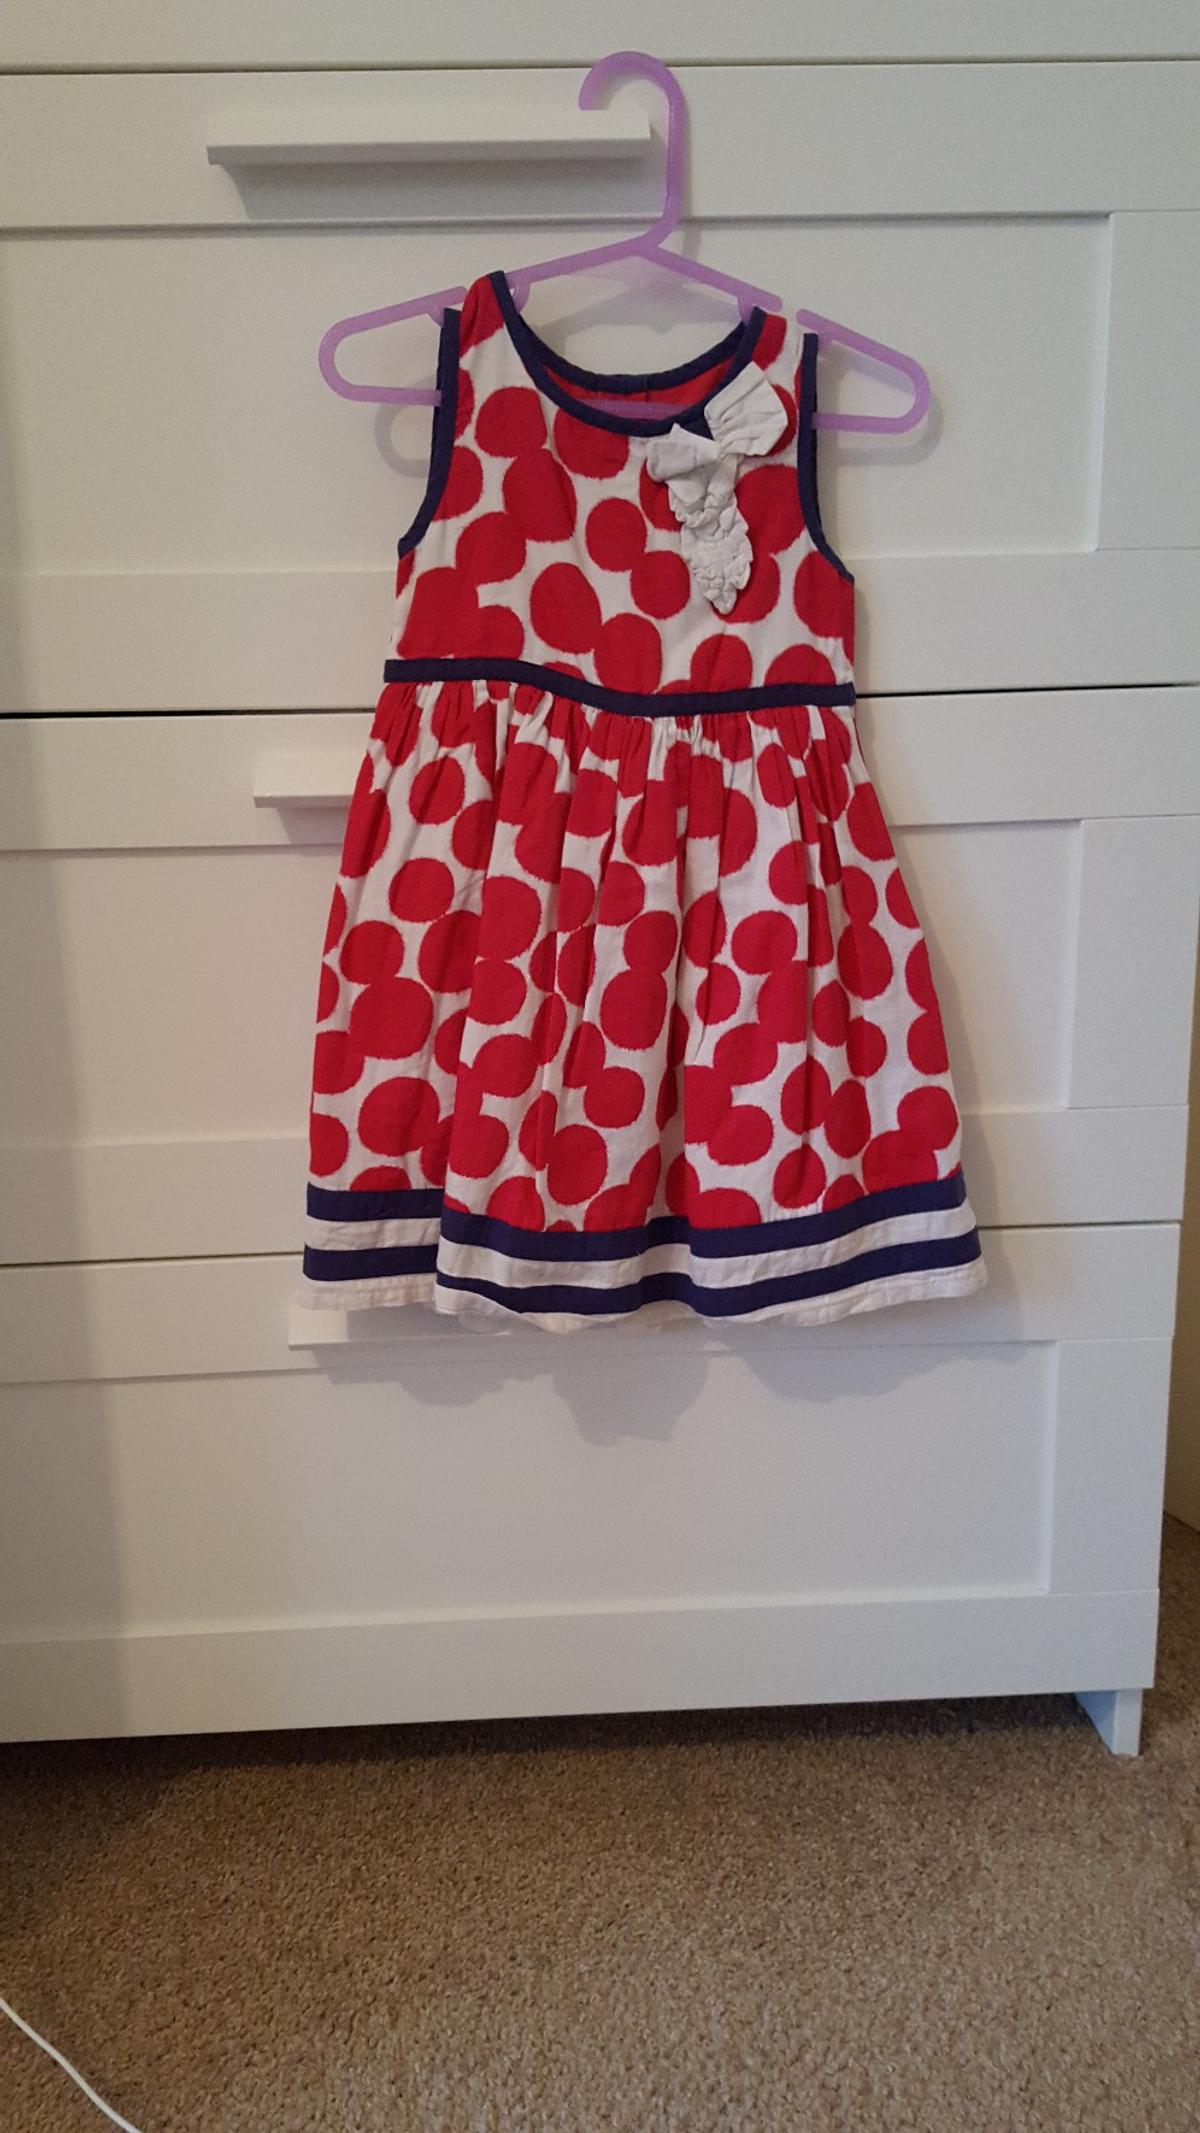 Dresses 12-18 Month Girls Dress Girls' Clothing (newborn-5t)